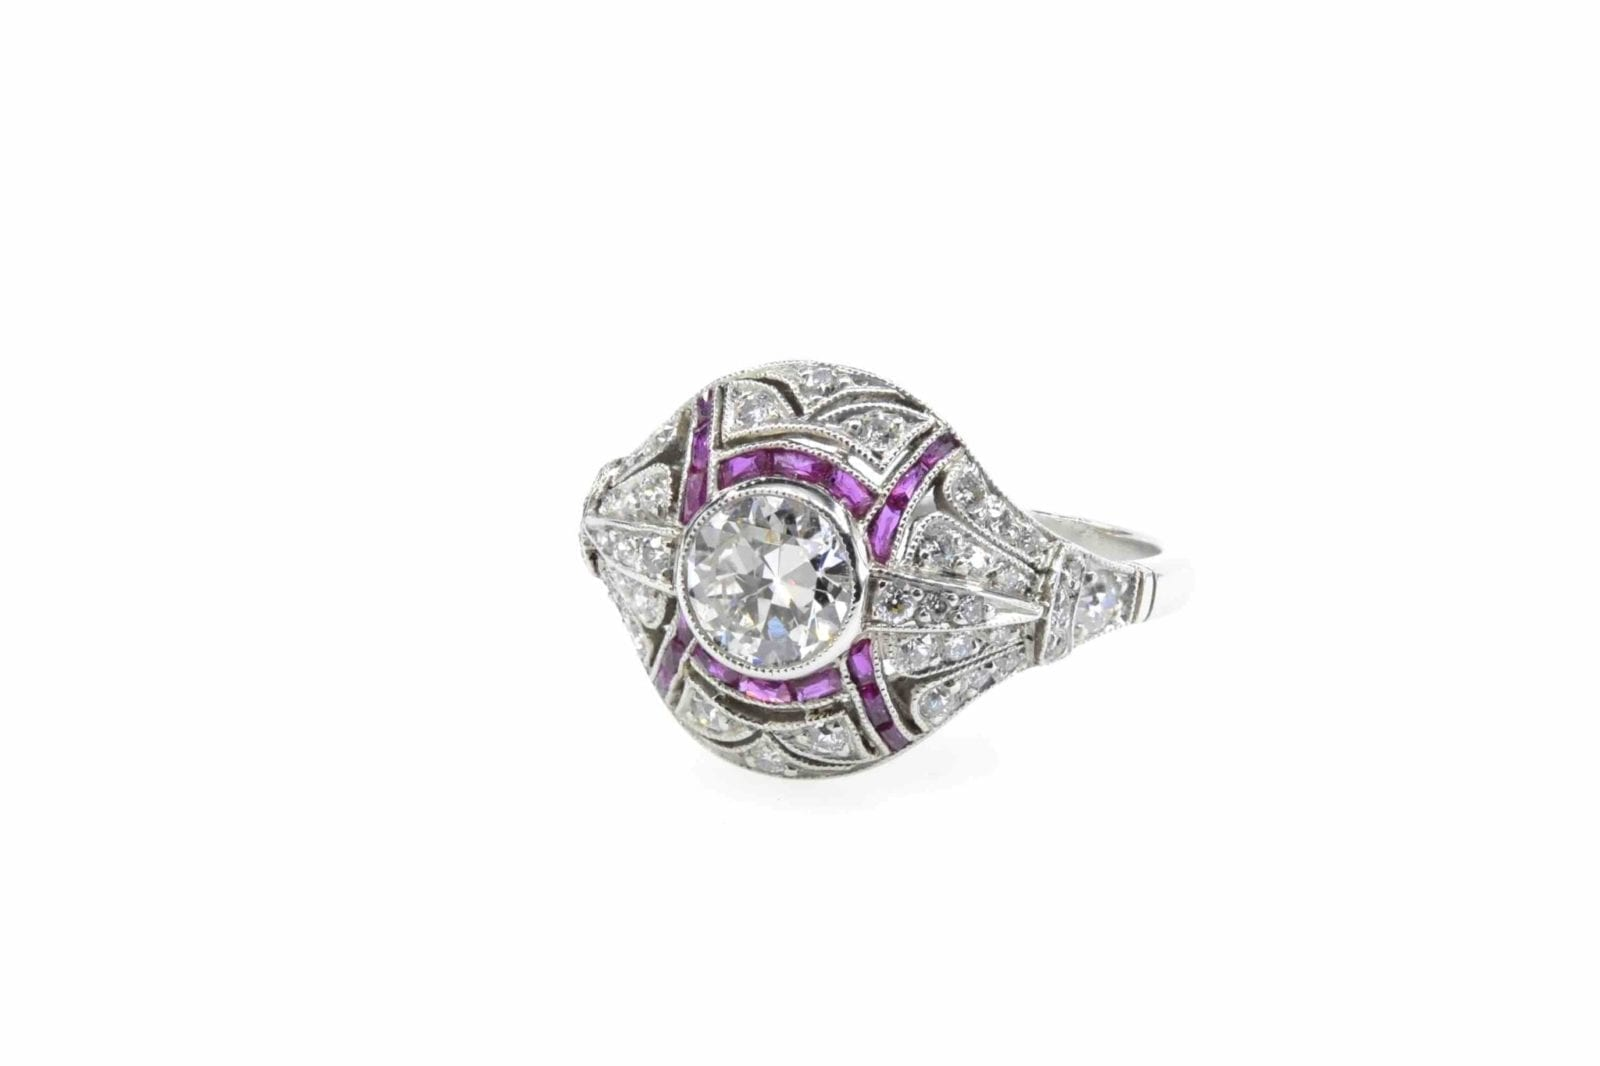 Bague vintage platine et diamants